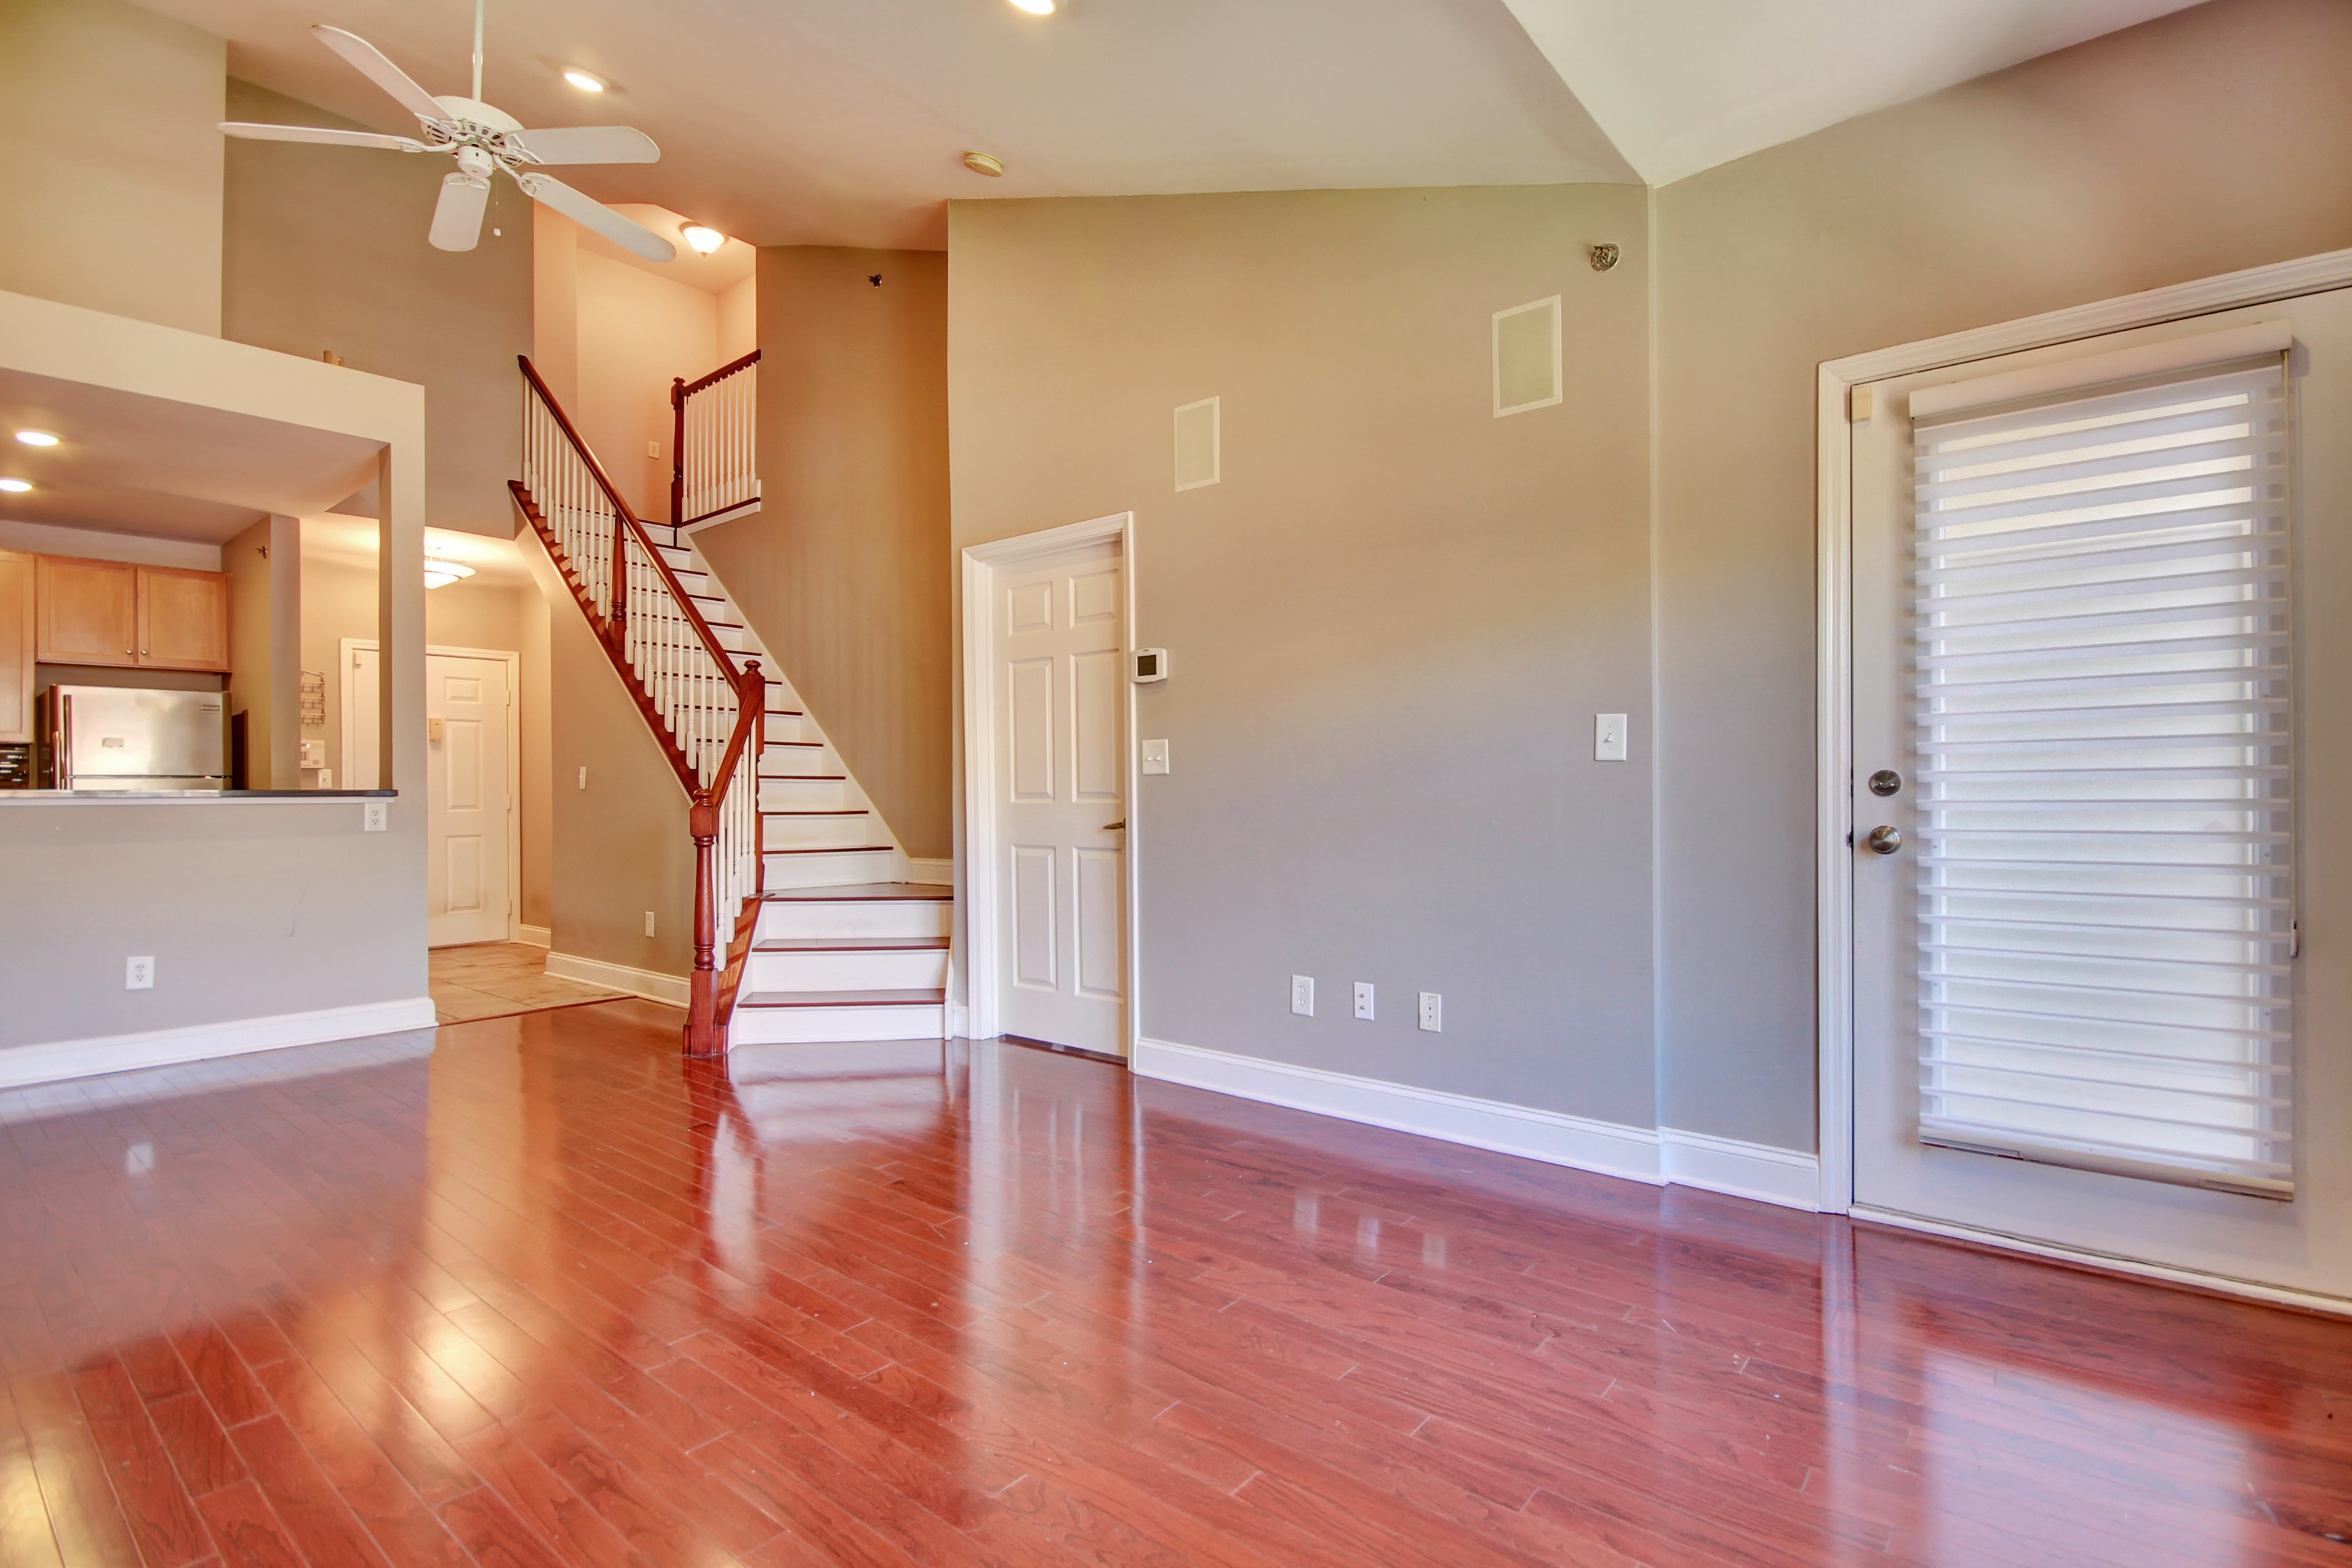 Apartment for Sale at Exceptional Two Bedroom 24 Ave At Port Imperial #431 West New York, New Jersey, 07093 United States